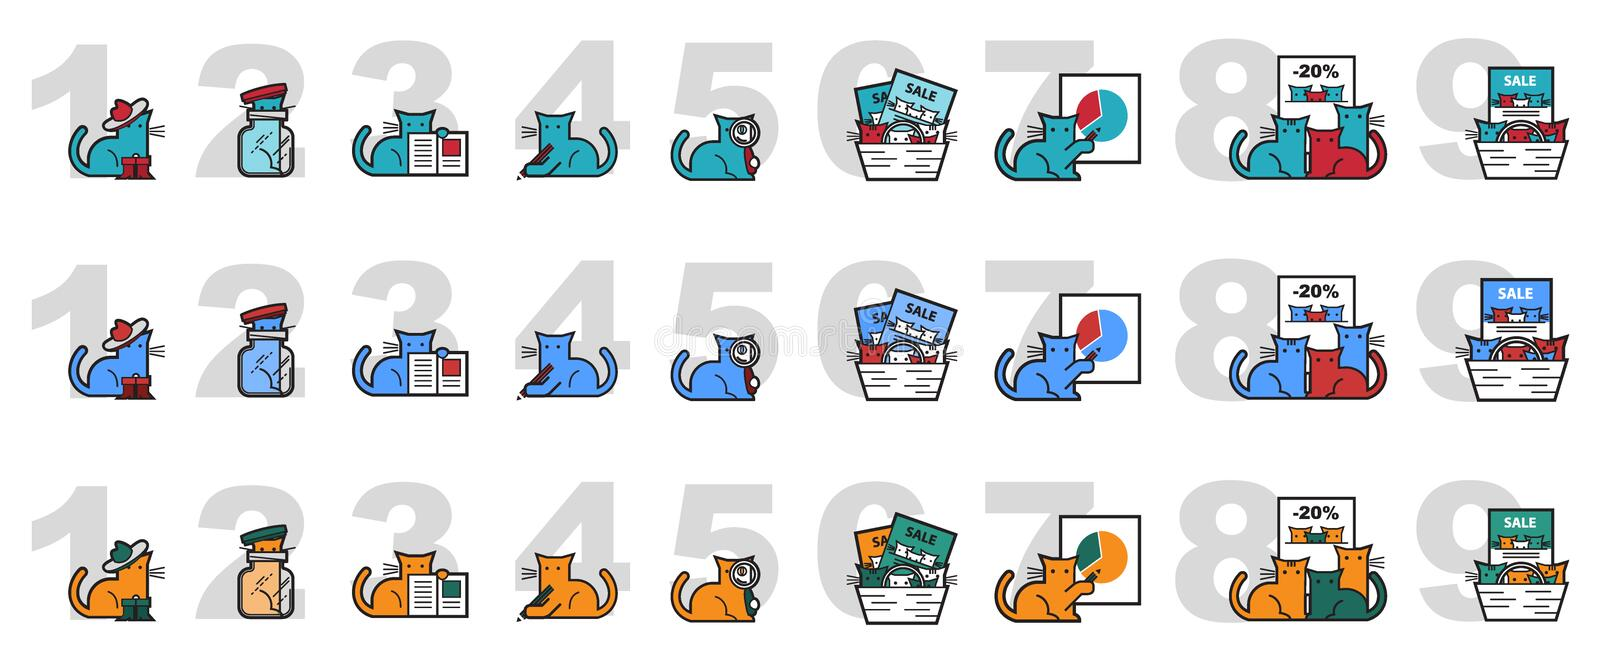 Vector image of cats for marketing and presentations stock illustration